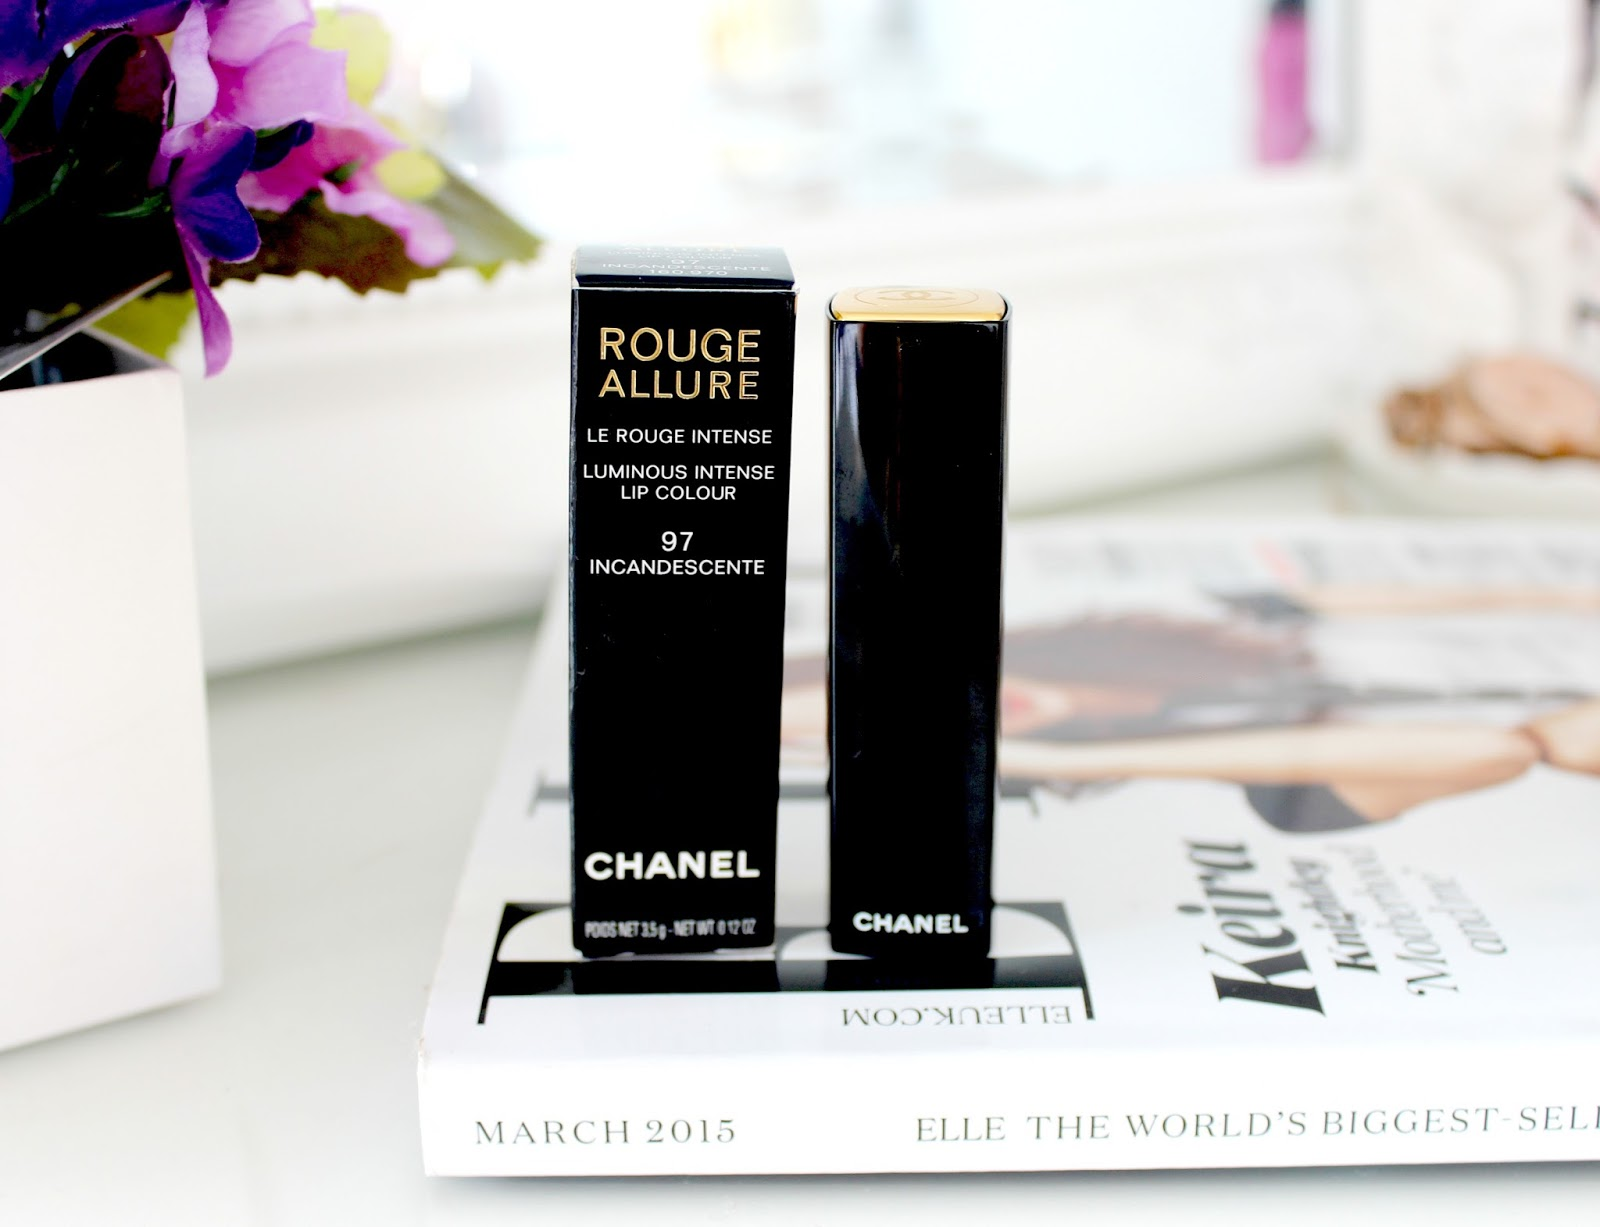 Chanel Incandescente Lipstick, Chanel Incandescente Lipstick Revew, Chanel Rouge Allure Lipstick Review